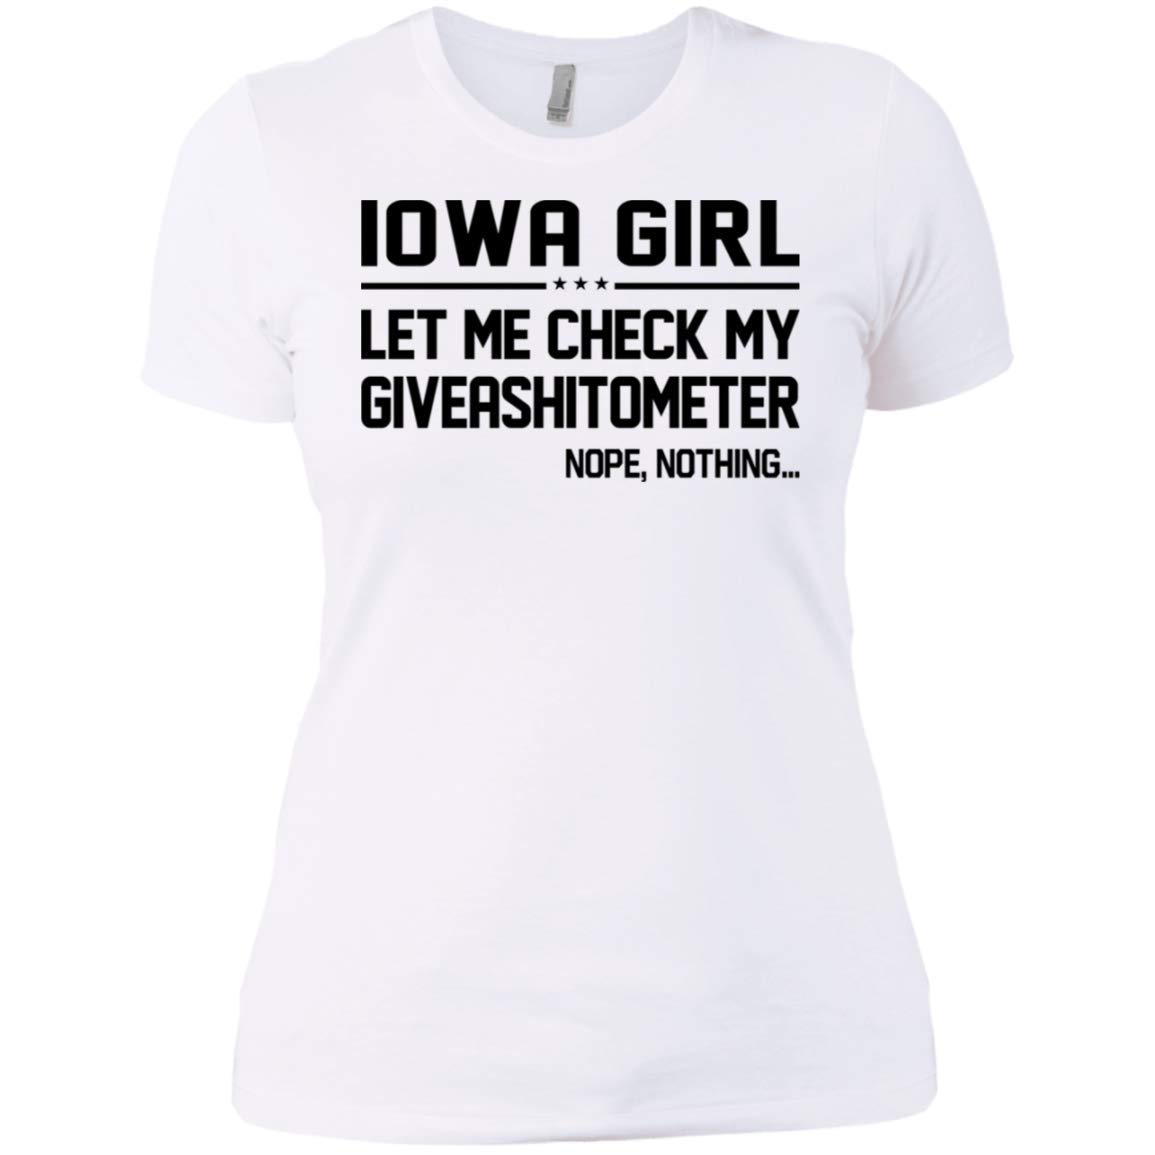 Lotacy Iowa Girl LET ME Check My GIVEASHITOMETER